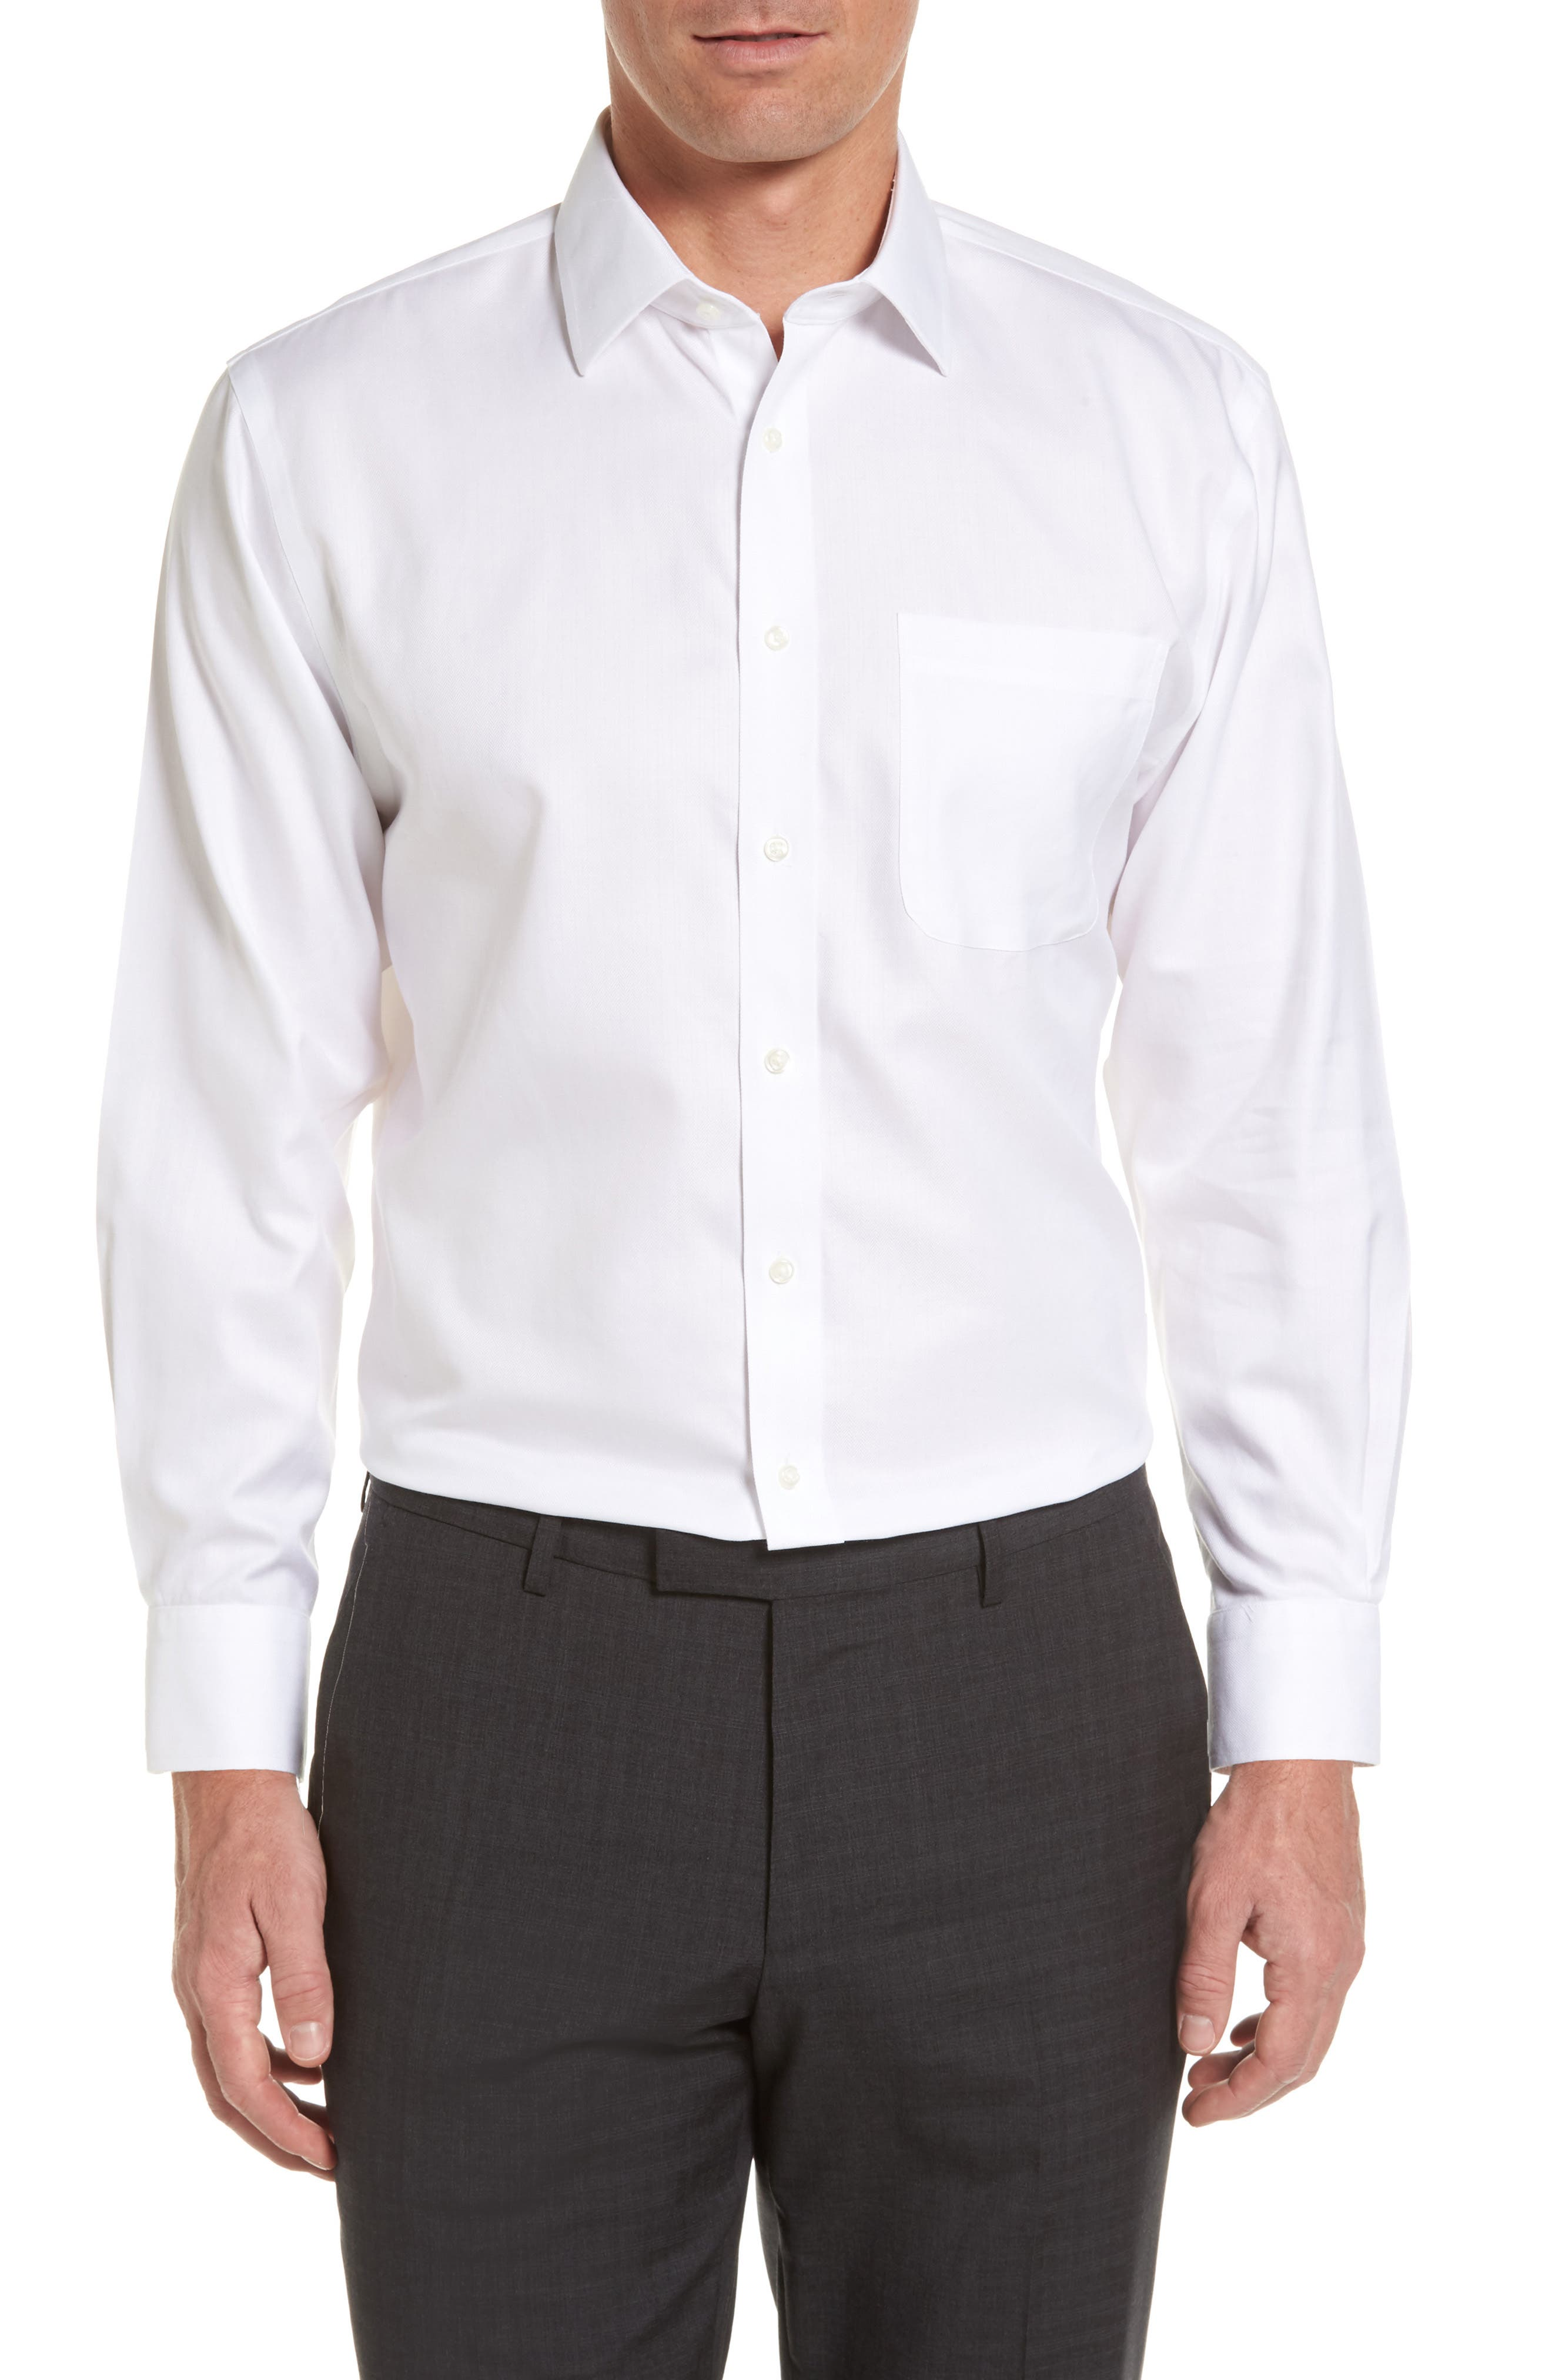 Nordstrom Shop Smartcare(TM) Traditional Fit Herringbone Dress Shirt